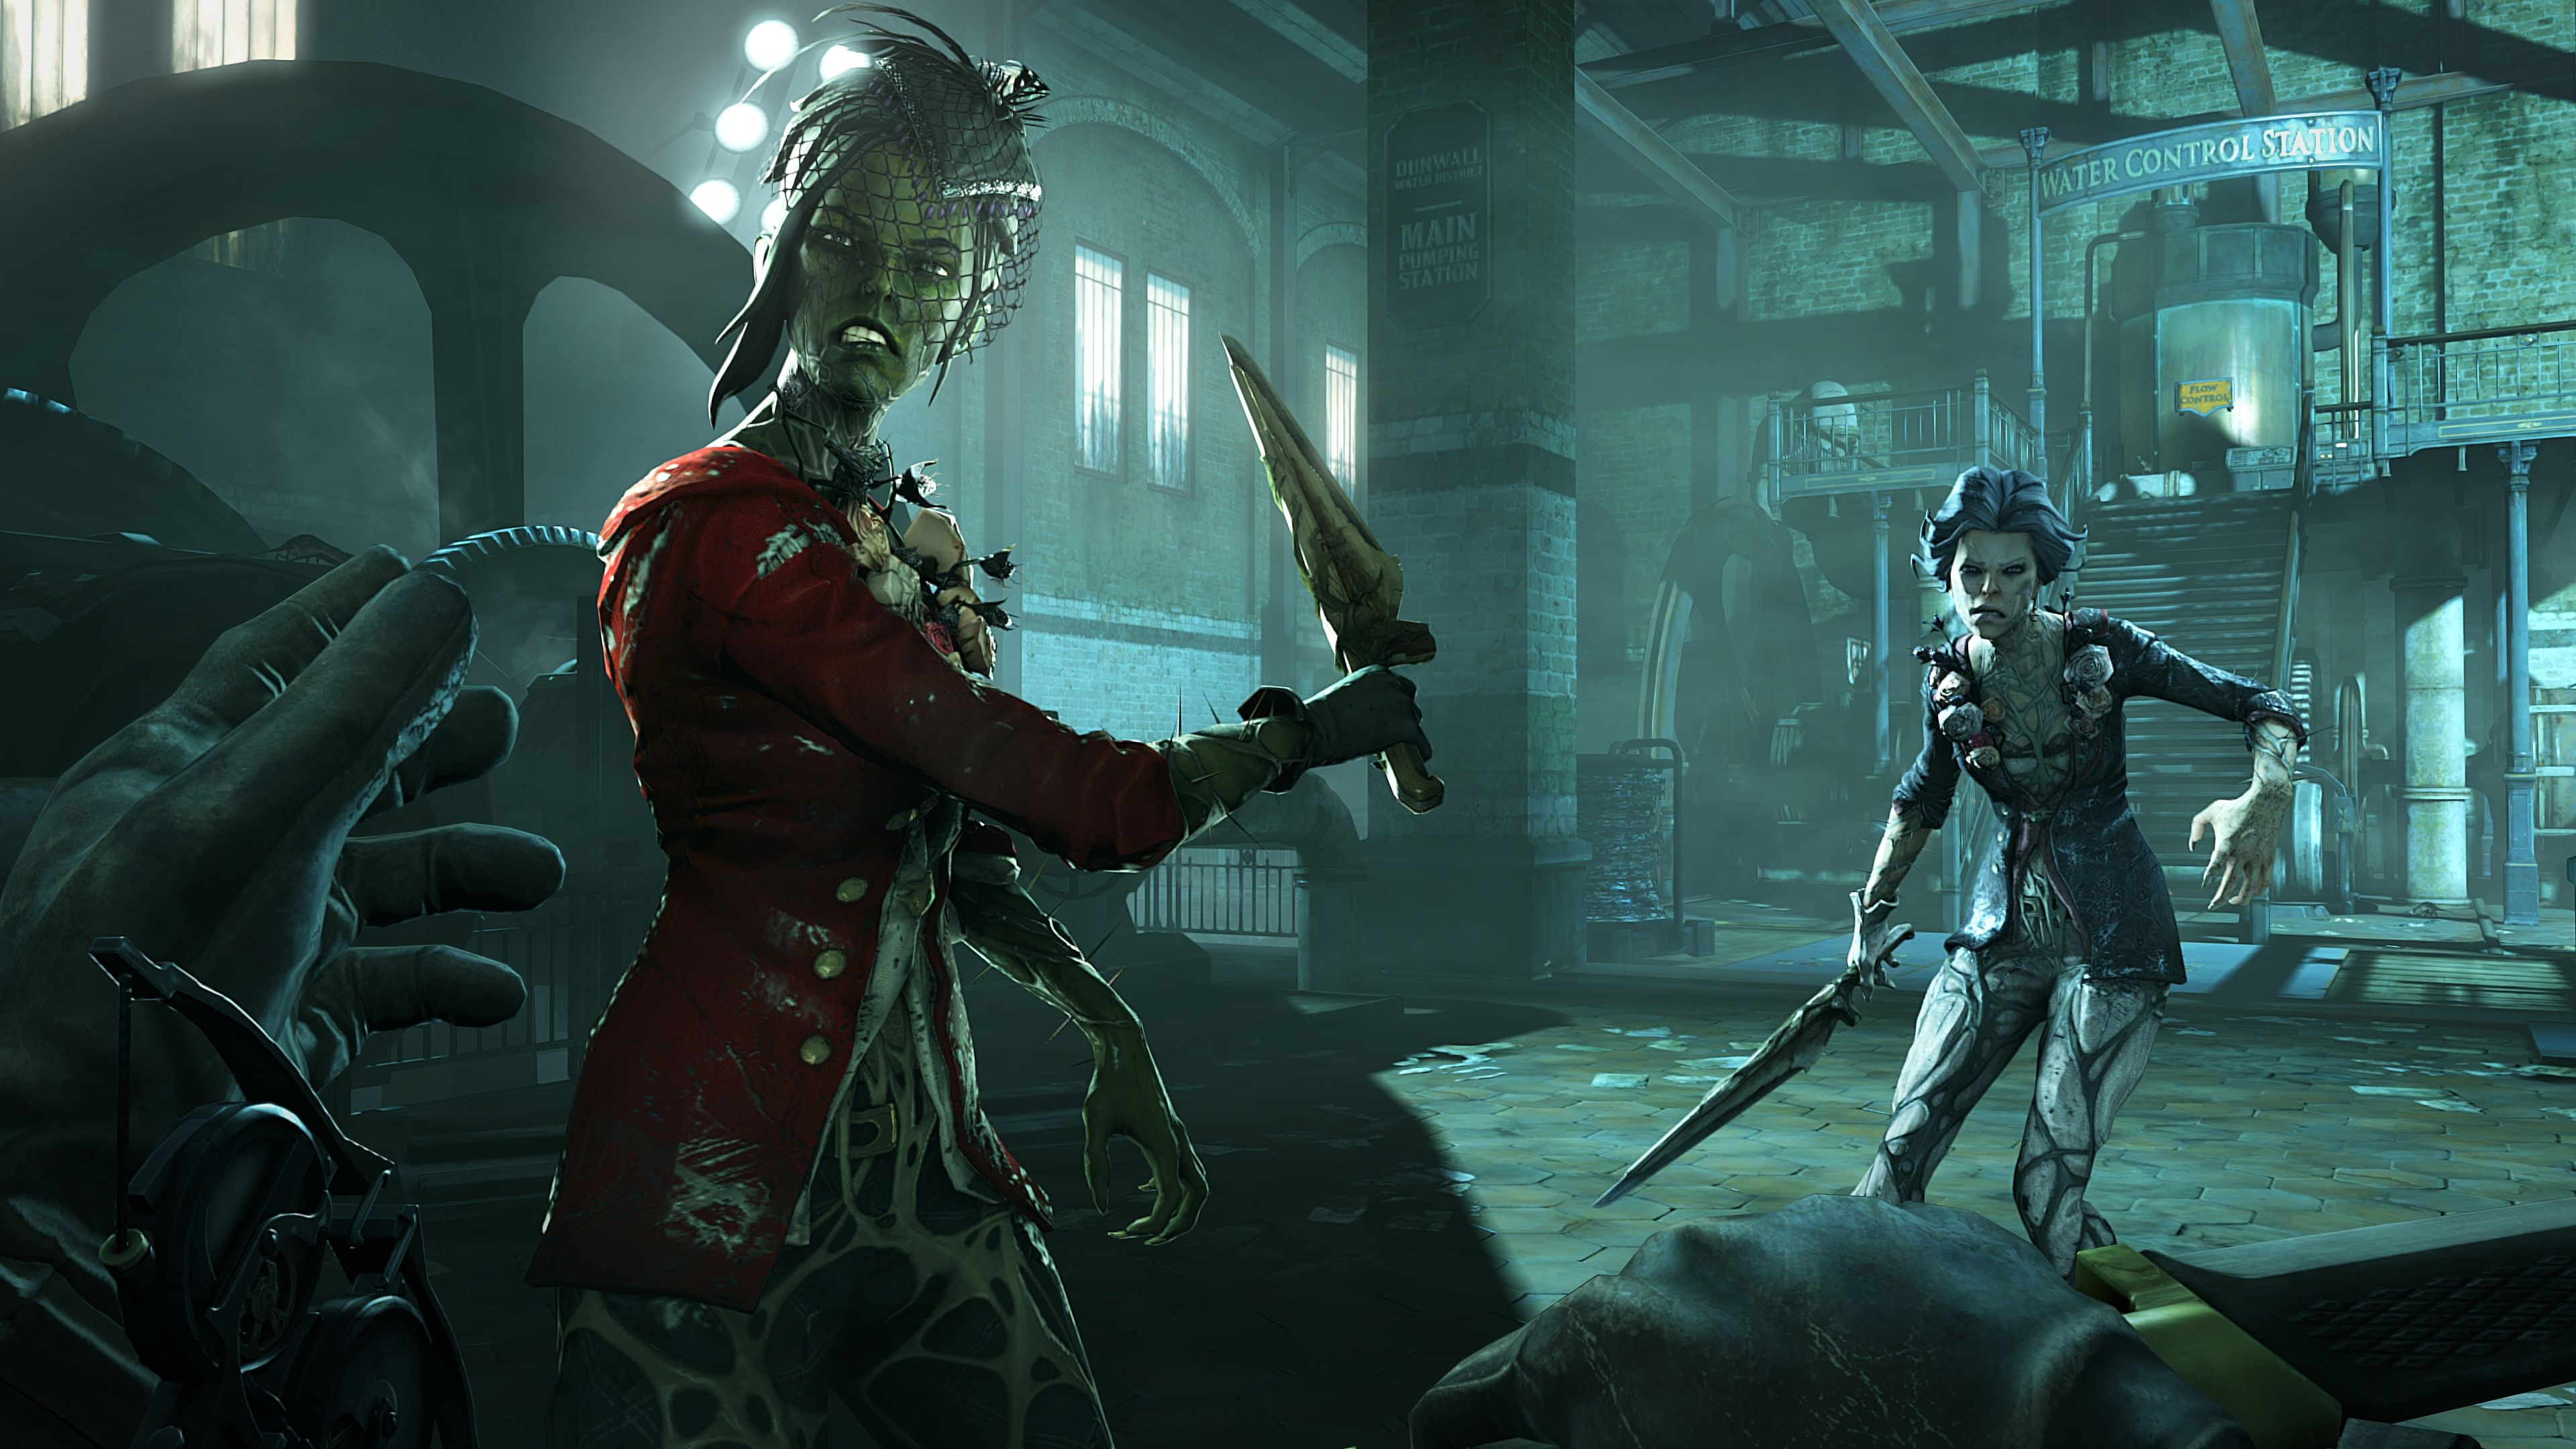 Dishonored 2 4k Hd Wallpapers Dishonored Dishonored 2 Witch Wallpaper